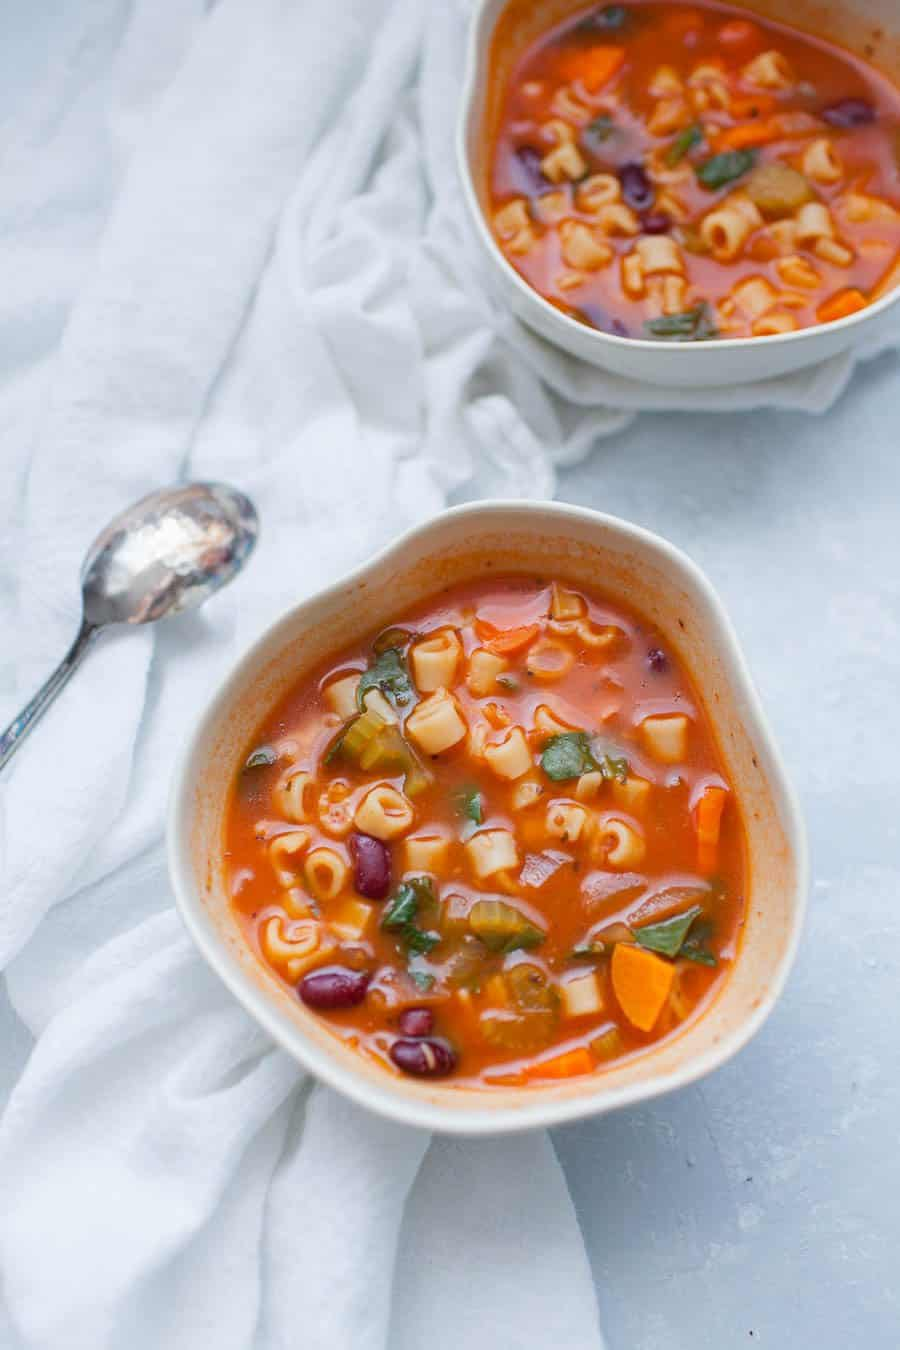 Fall is just around the corner which means it's soup season! You won't need to slave over this one all day though, this quick minestrone soup is packed with veggies and flavor and can be made quickly. This classic soup is hearty and satisfying.